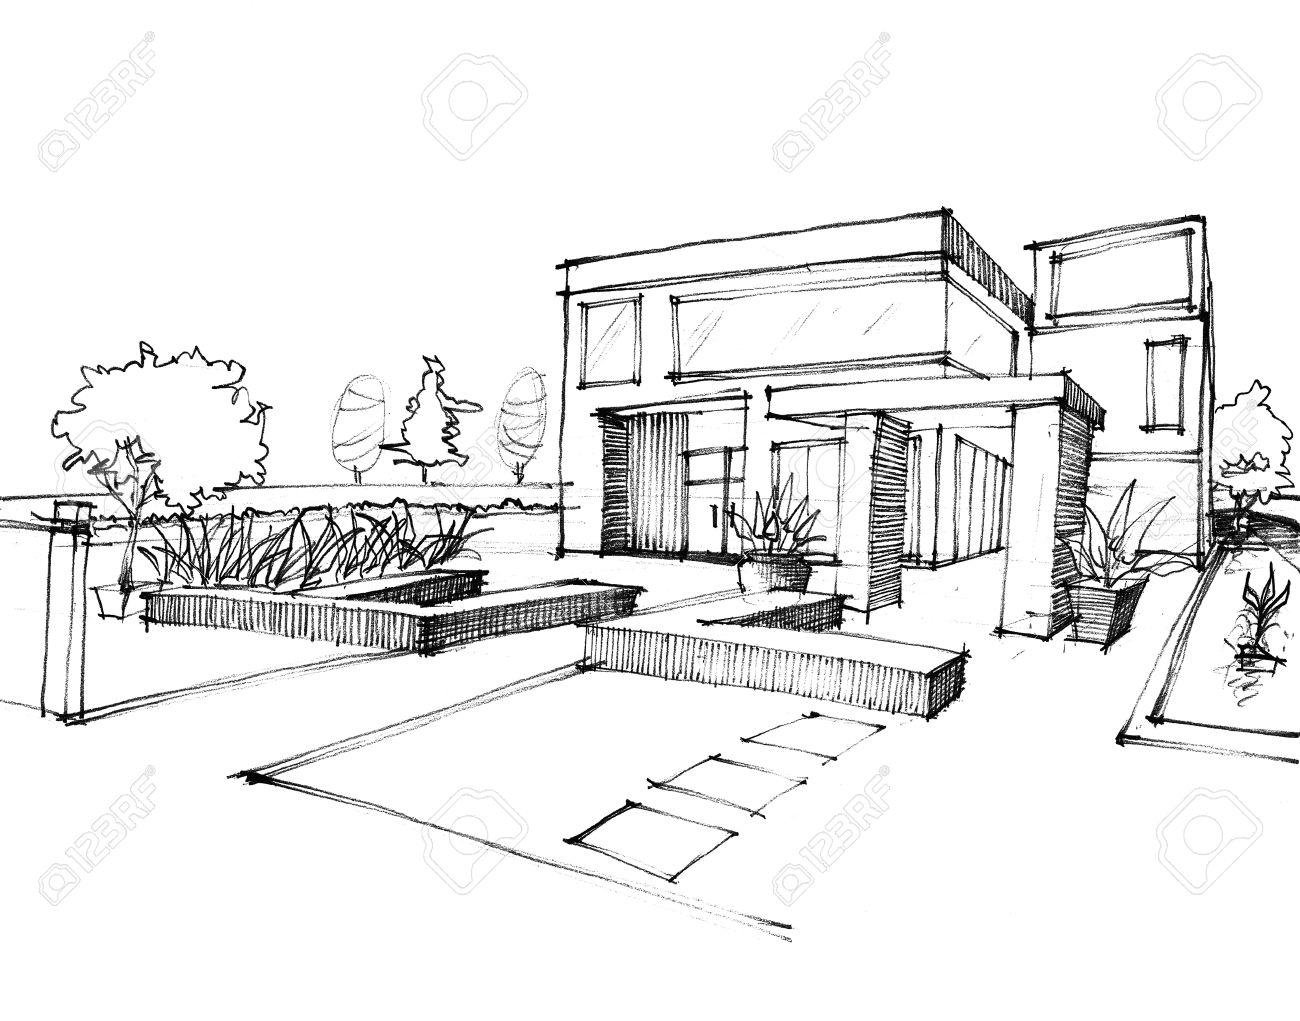 House Sketch Design Part - 19: Home Sketch Design On White Paper Stock Photo - 13524439